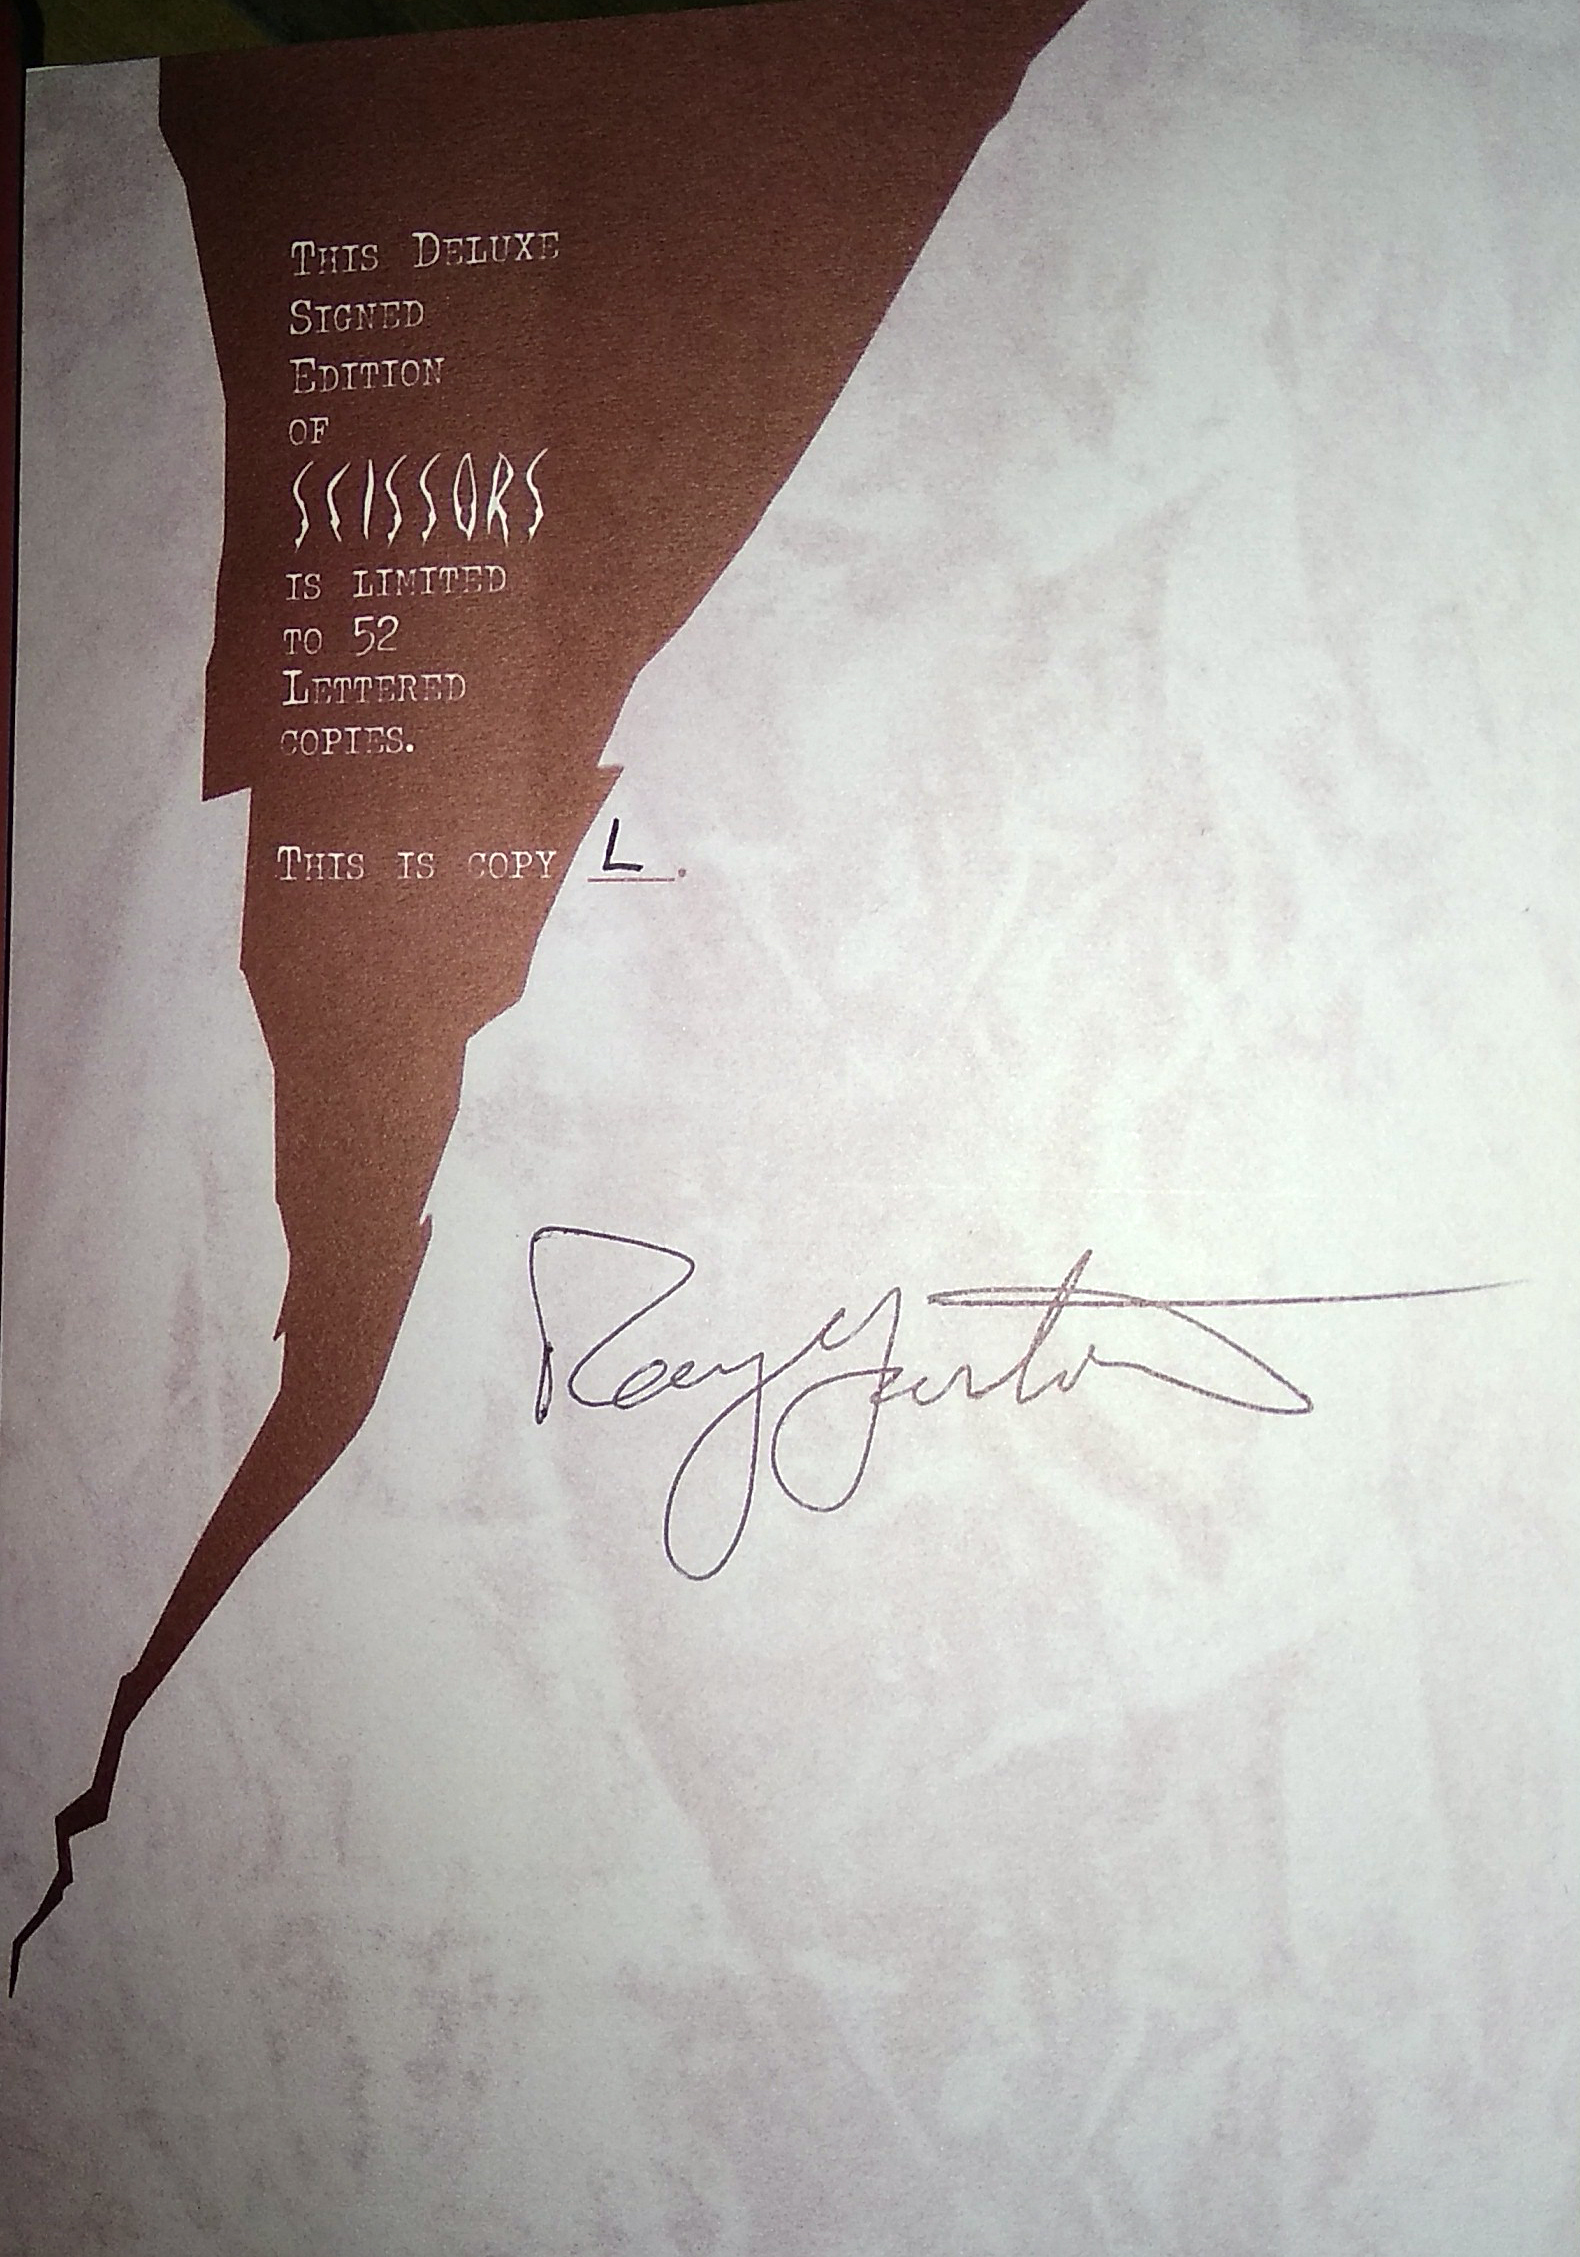 Scissors Signed Lettered Edition